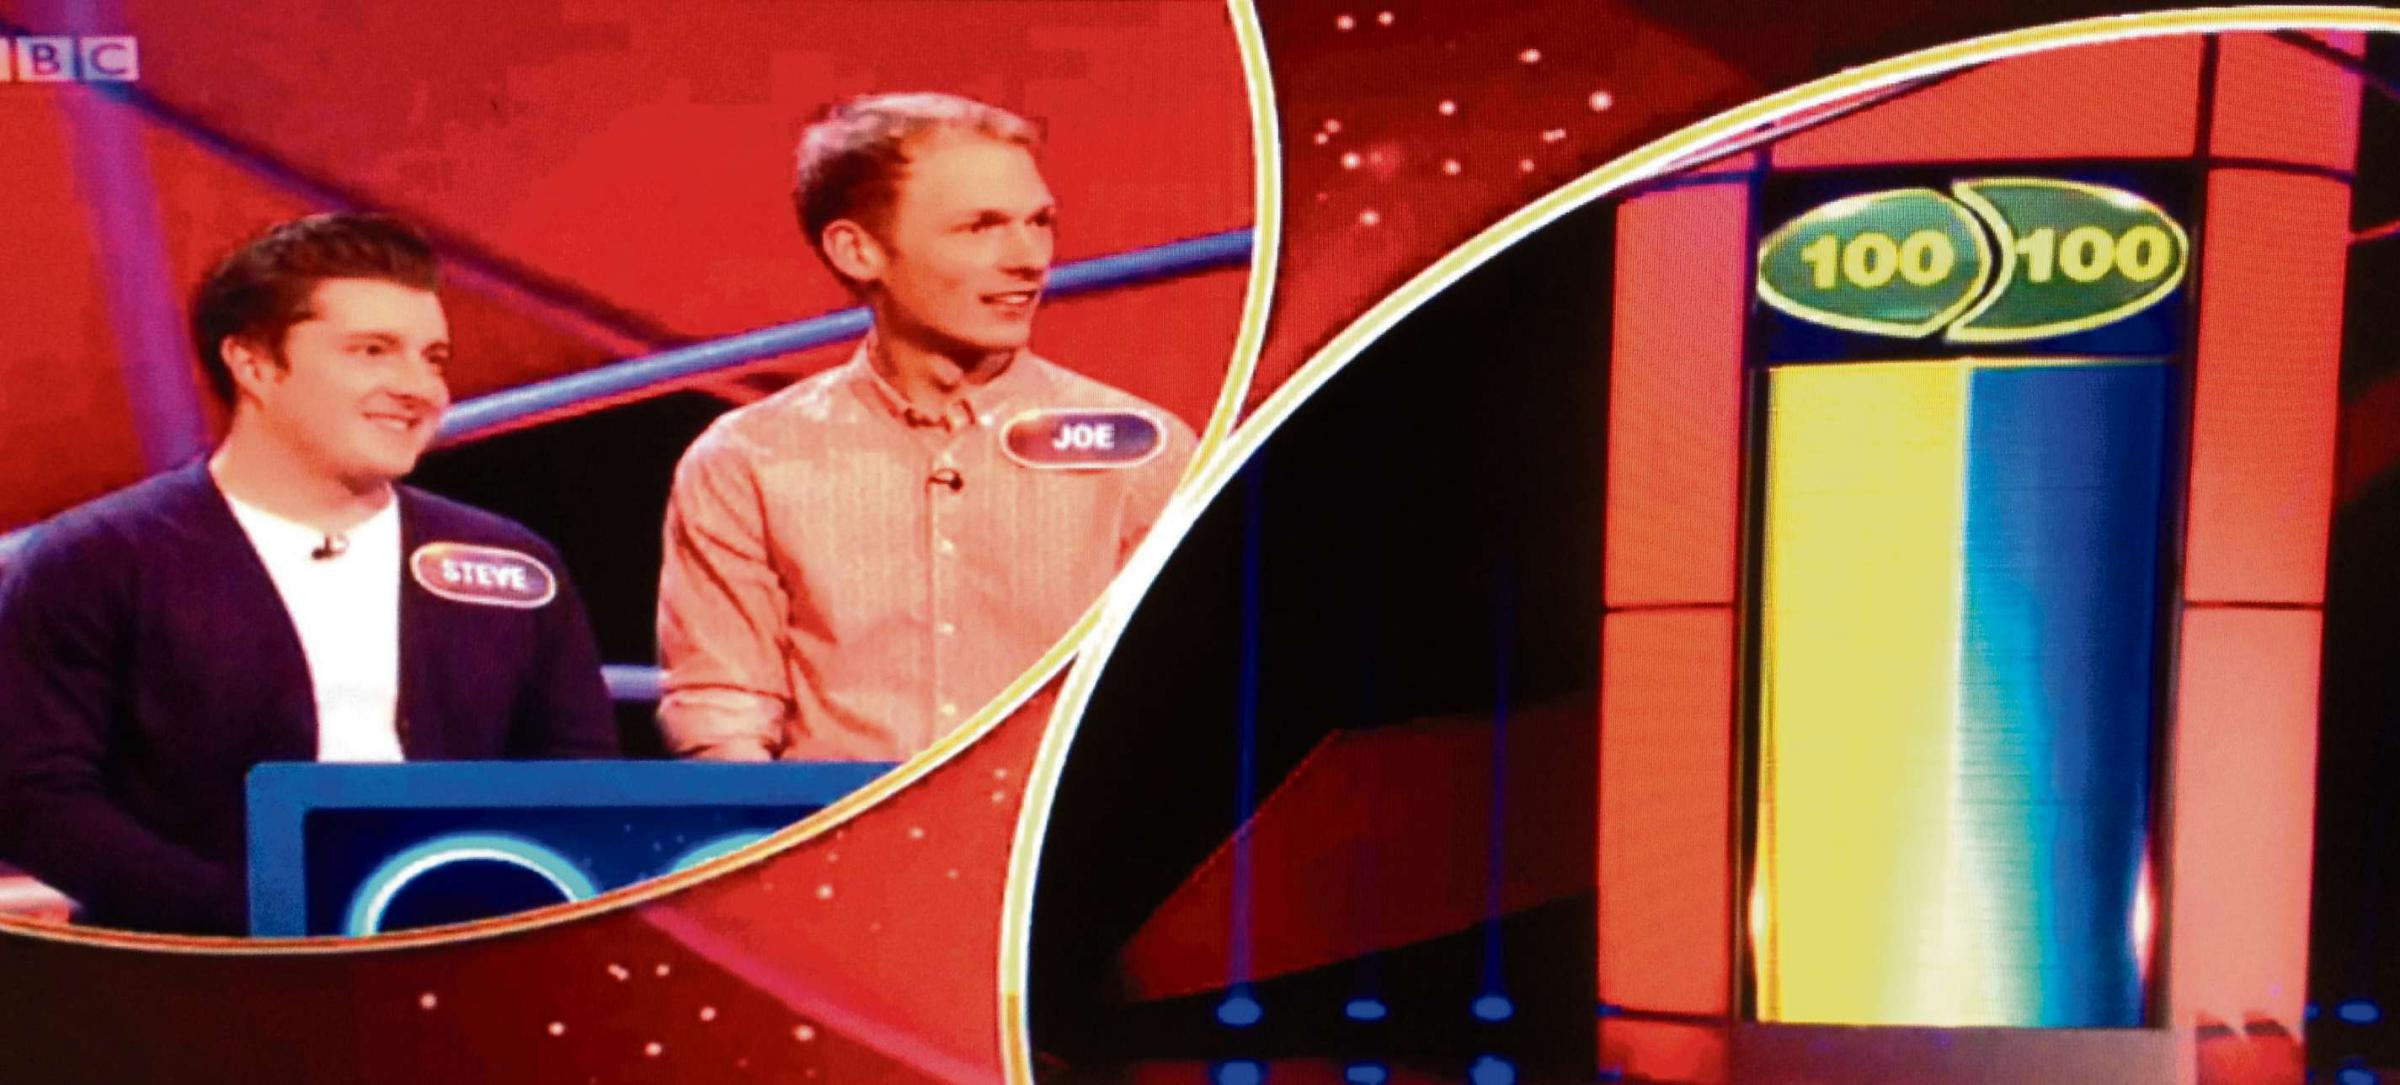 Steve Knight (left) on the BBC'S Pointless game show.